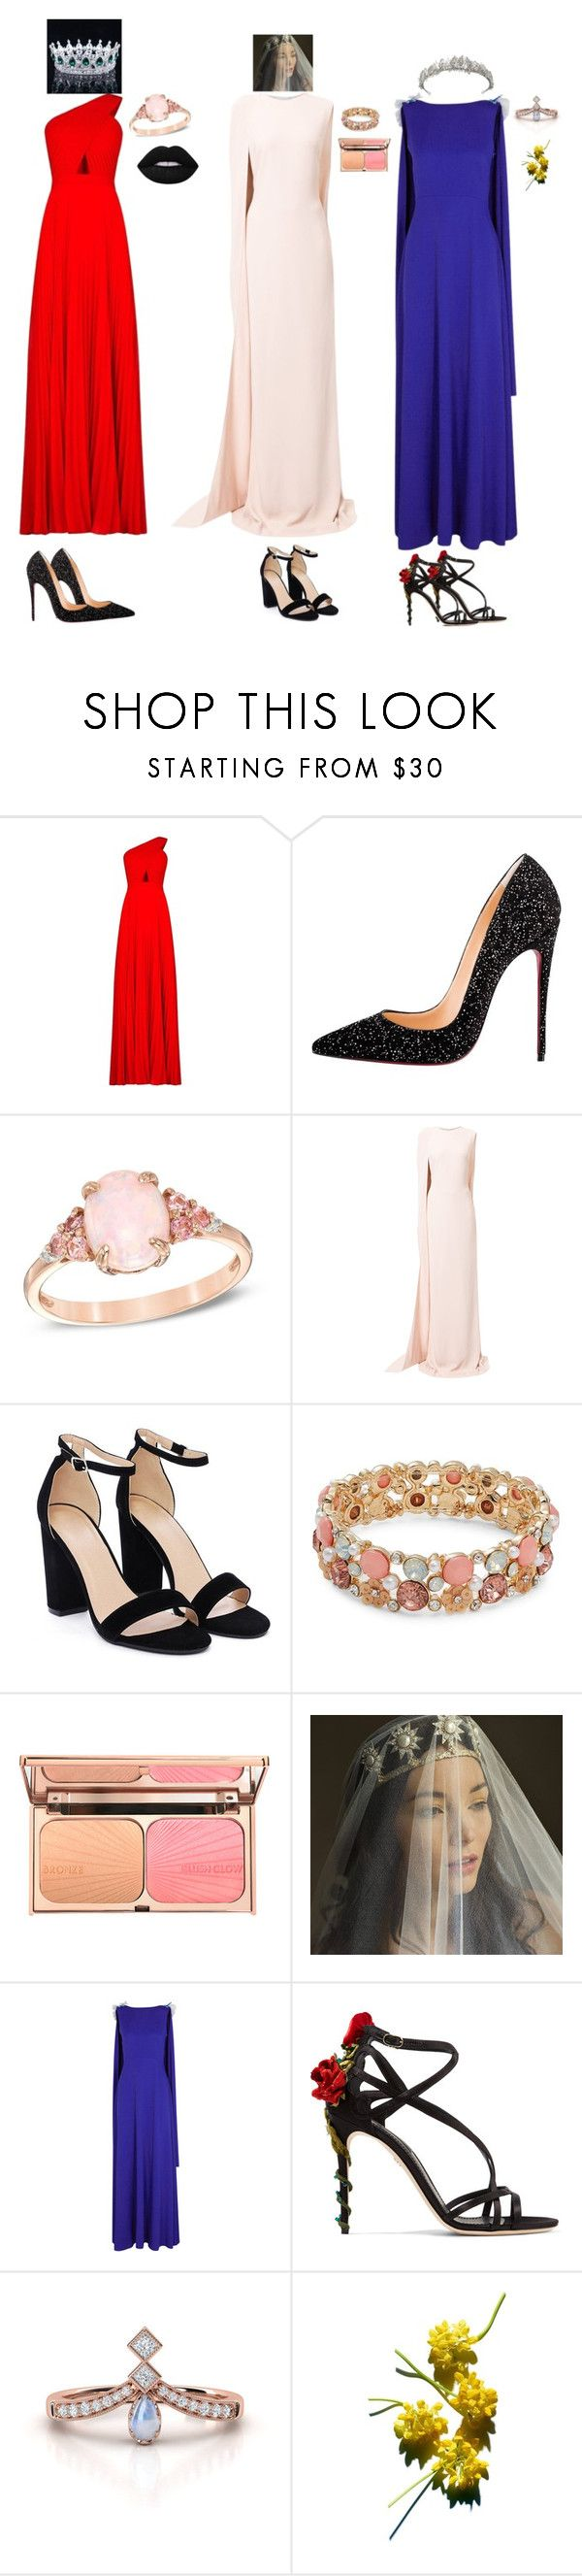 """Fiesty"" by kyliemeadowsmith ❤ liked on Polyvore featuring BCBGMAXAZRIA, Christian Louboutin, STELLA McCARTNEY, Nasty Gal, Design Lab, Safiyaa and Dolce&Gabbana"